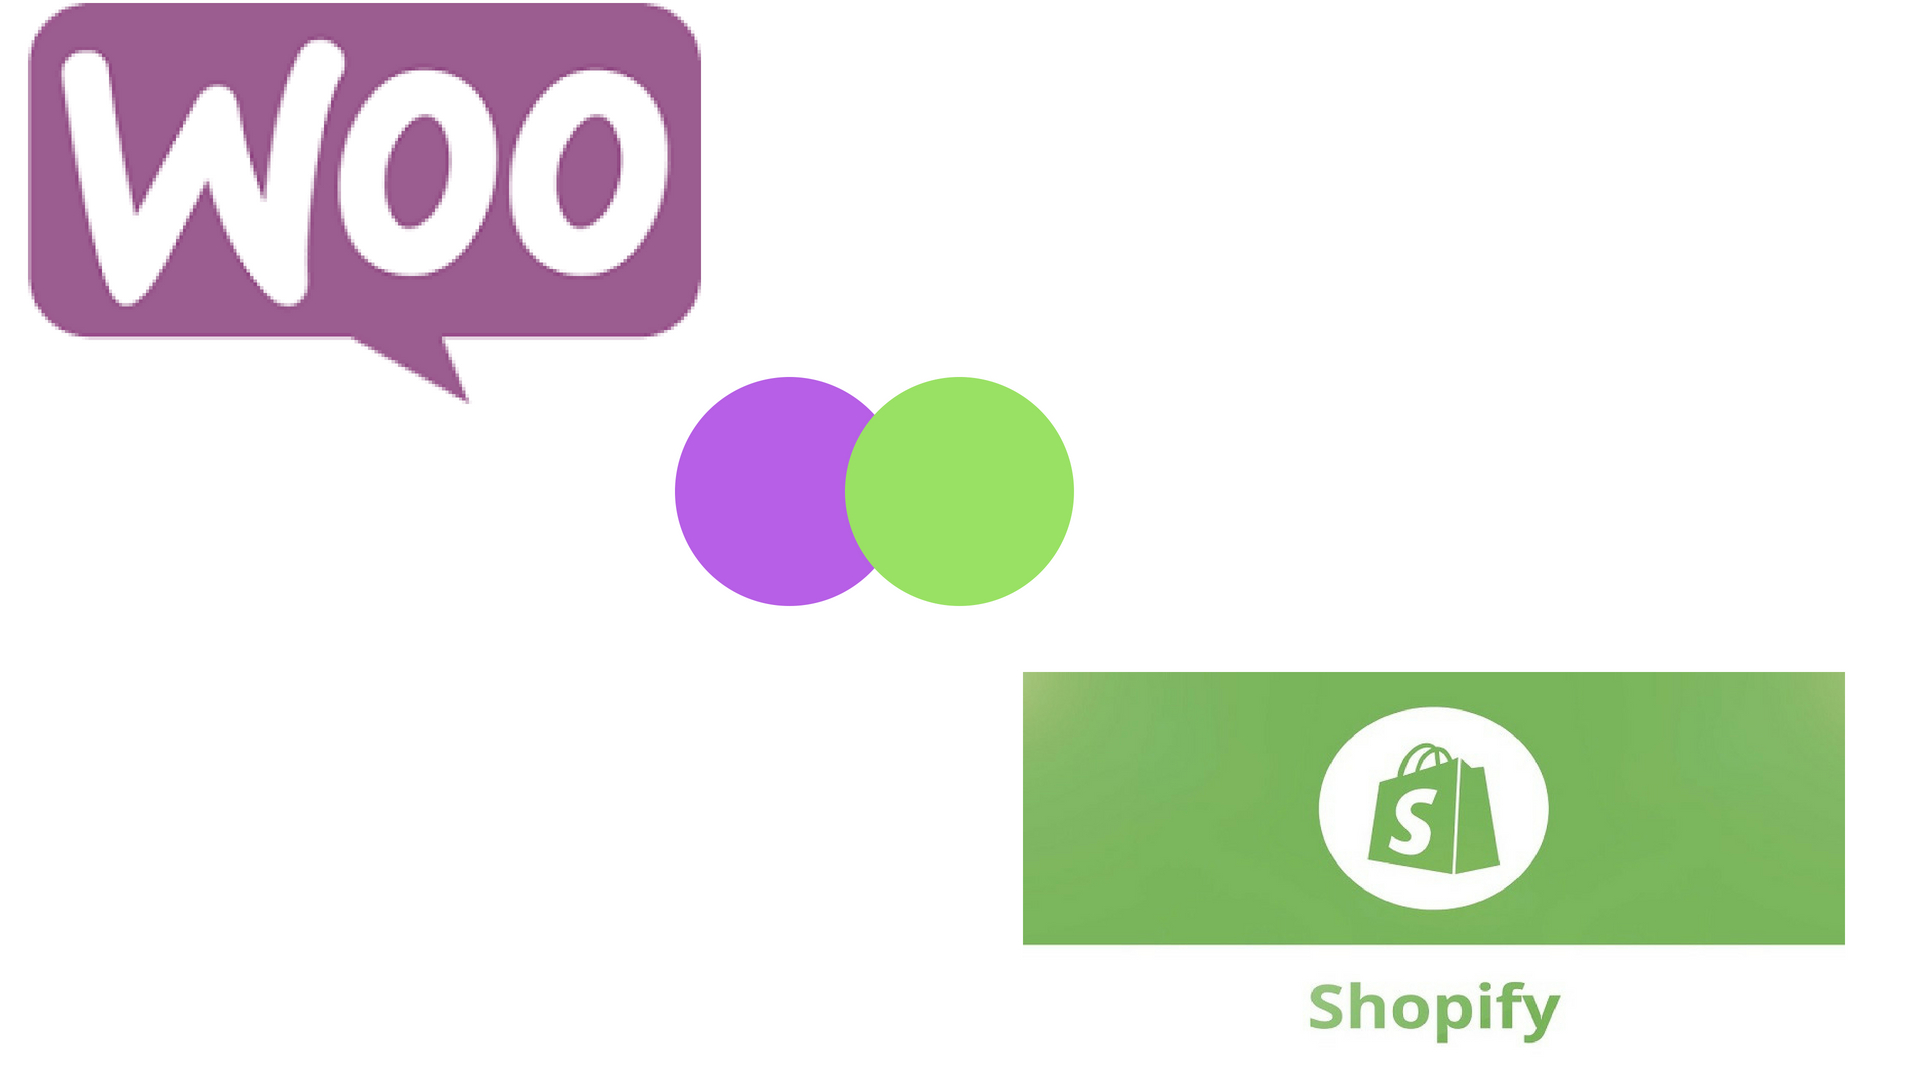 1-click integration Shopify Woocommerce for Uduala